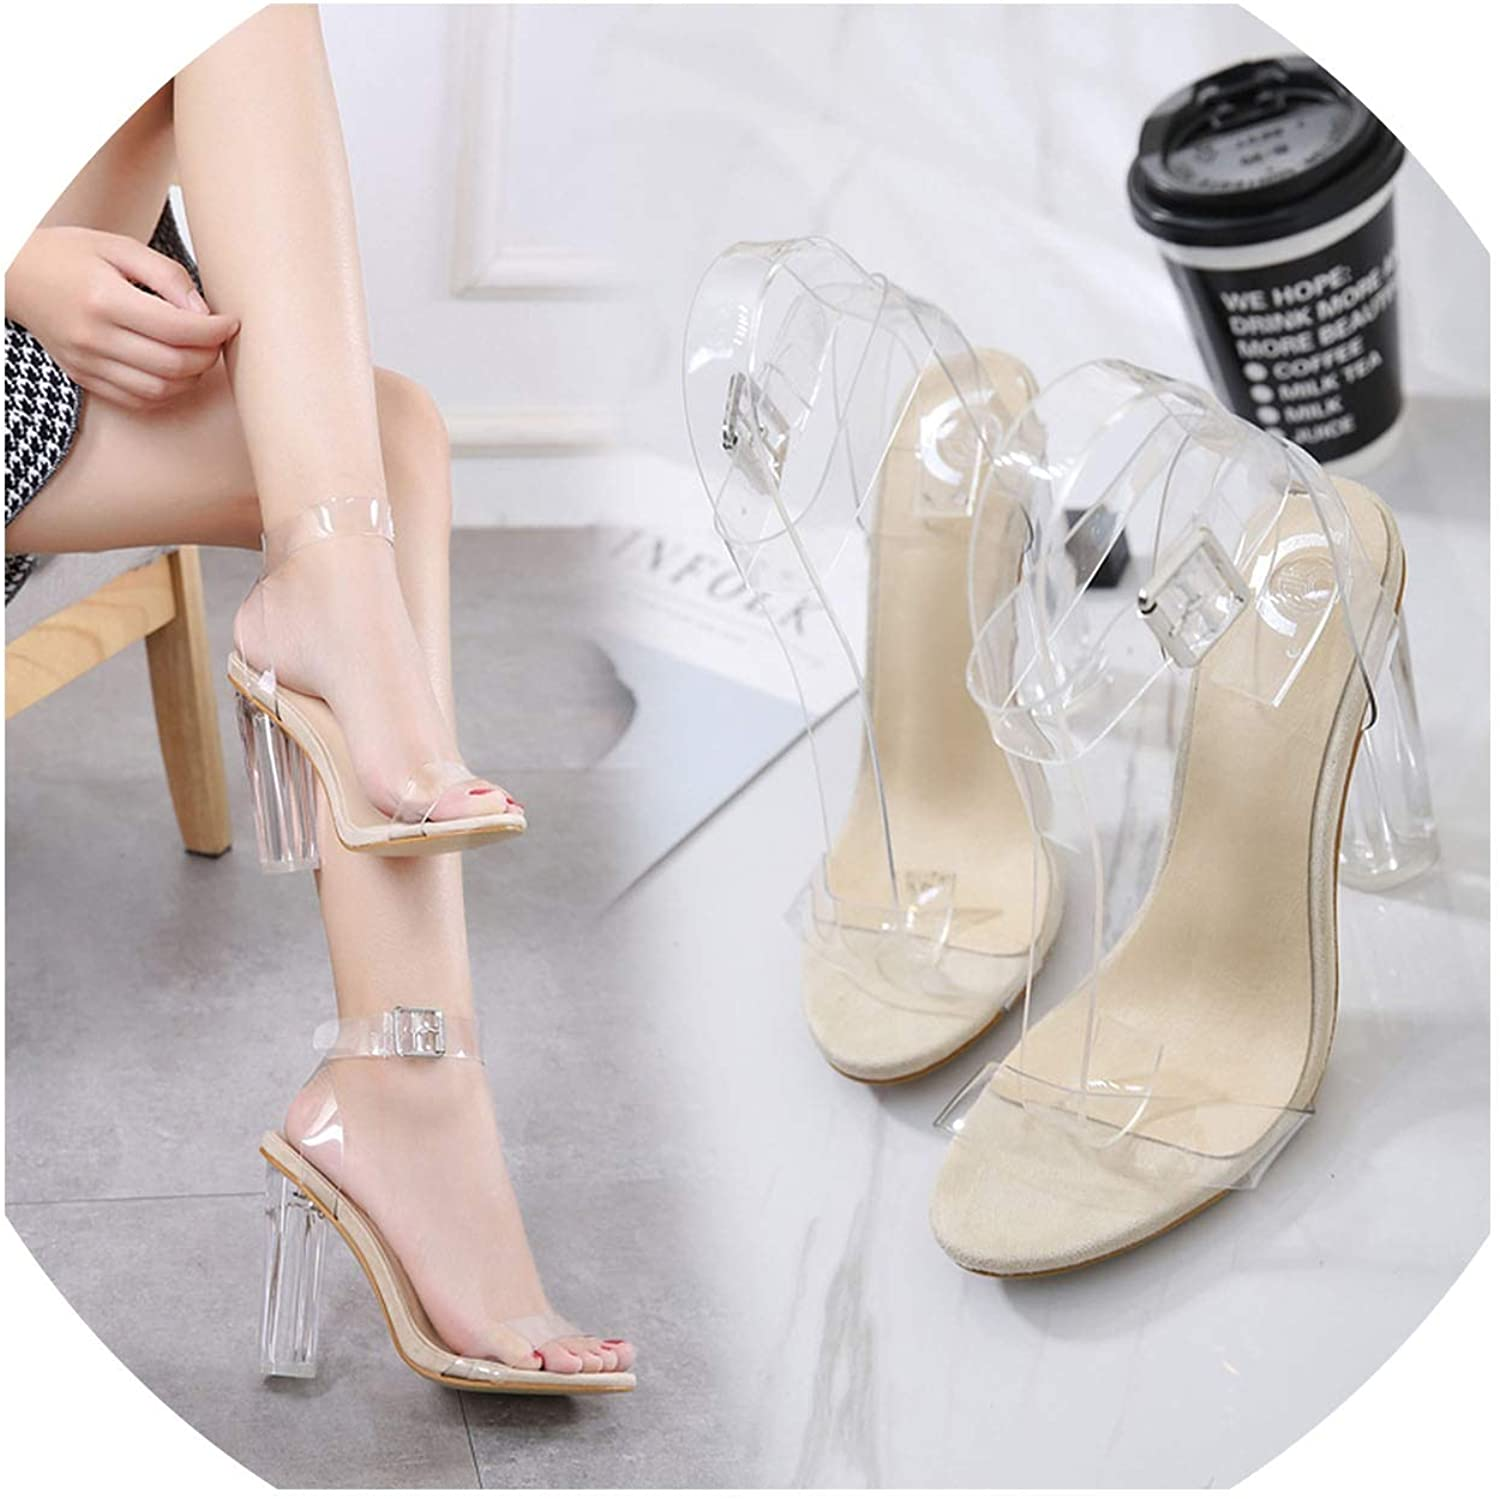 Plus Size Women's Sandals Ankle Strap Adjustable Buckle Clear Block Chunky High Heel Sandal Open Toe Fashion Dress shoes